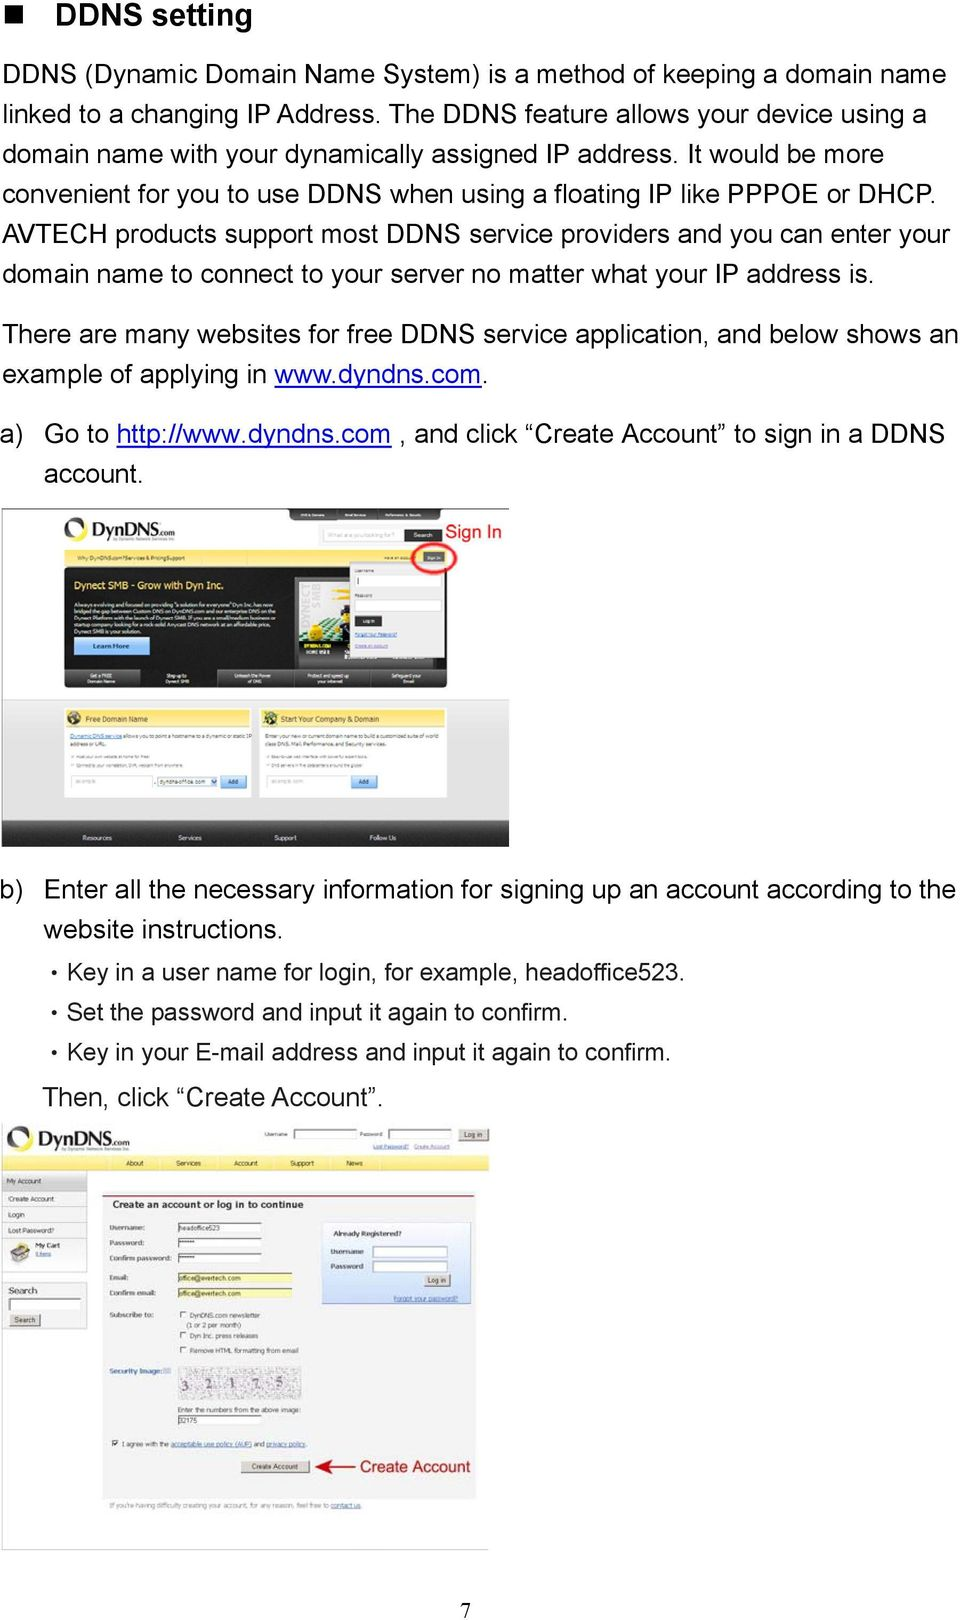 AVTECH products support most DDNS service providers and you can enter your domain name to connect to your server no matter what your IP address is.